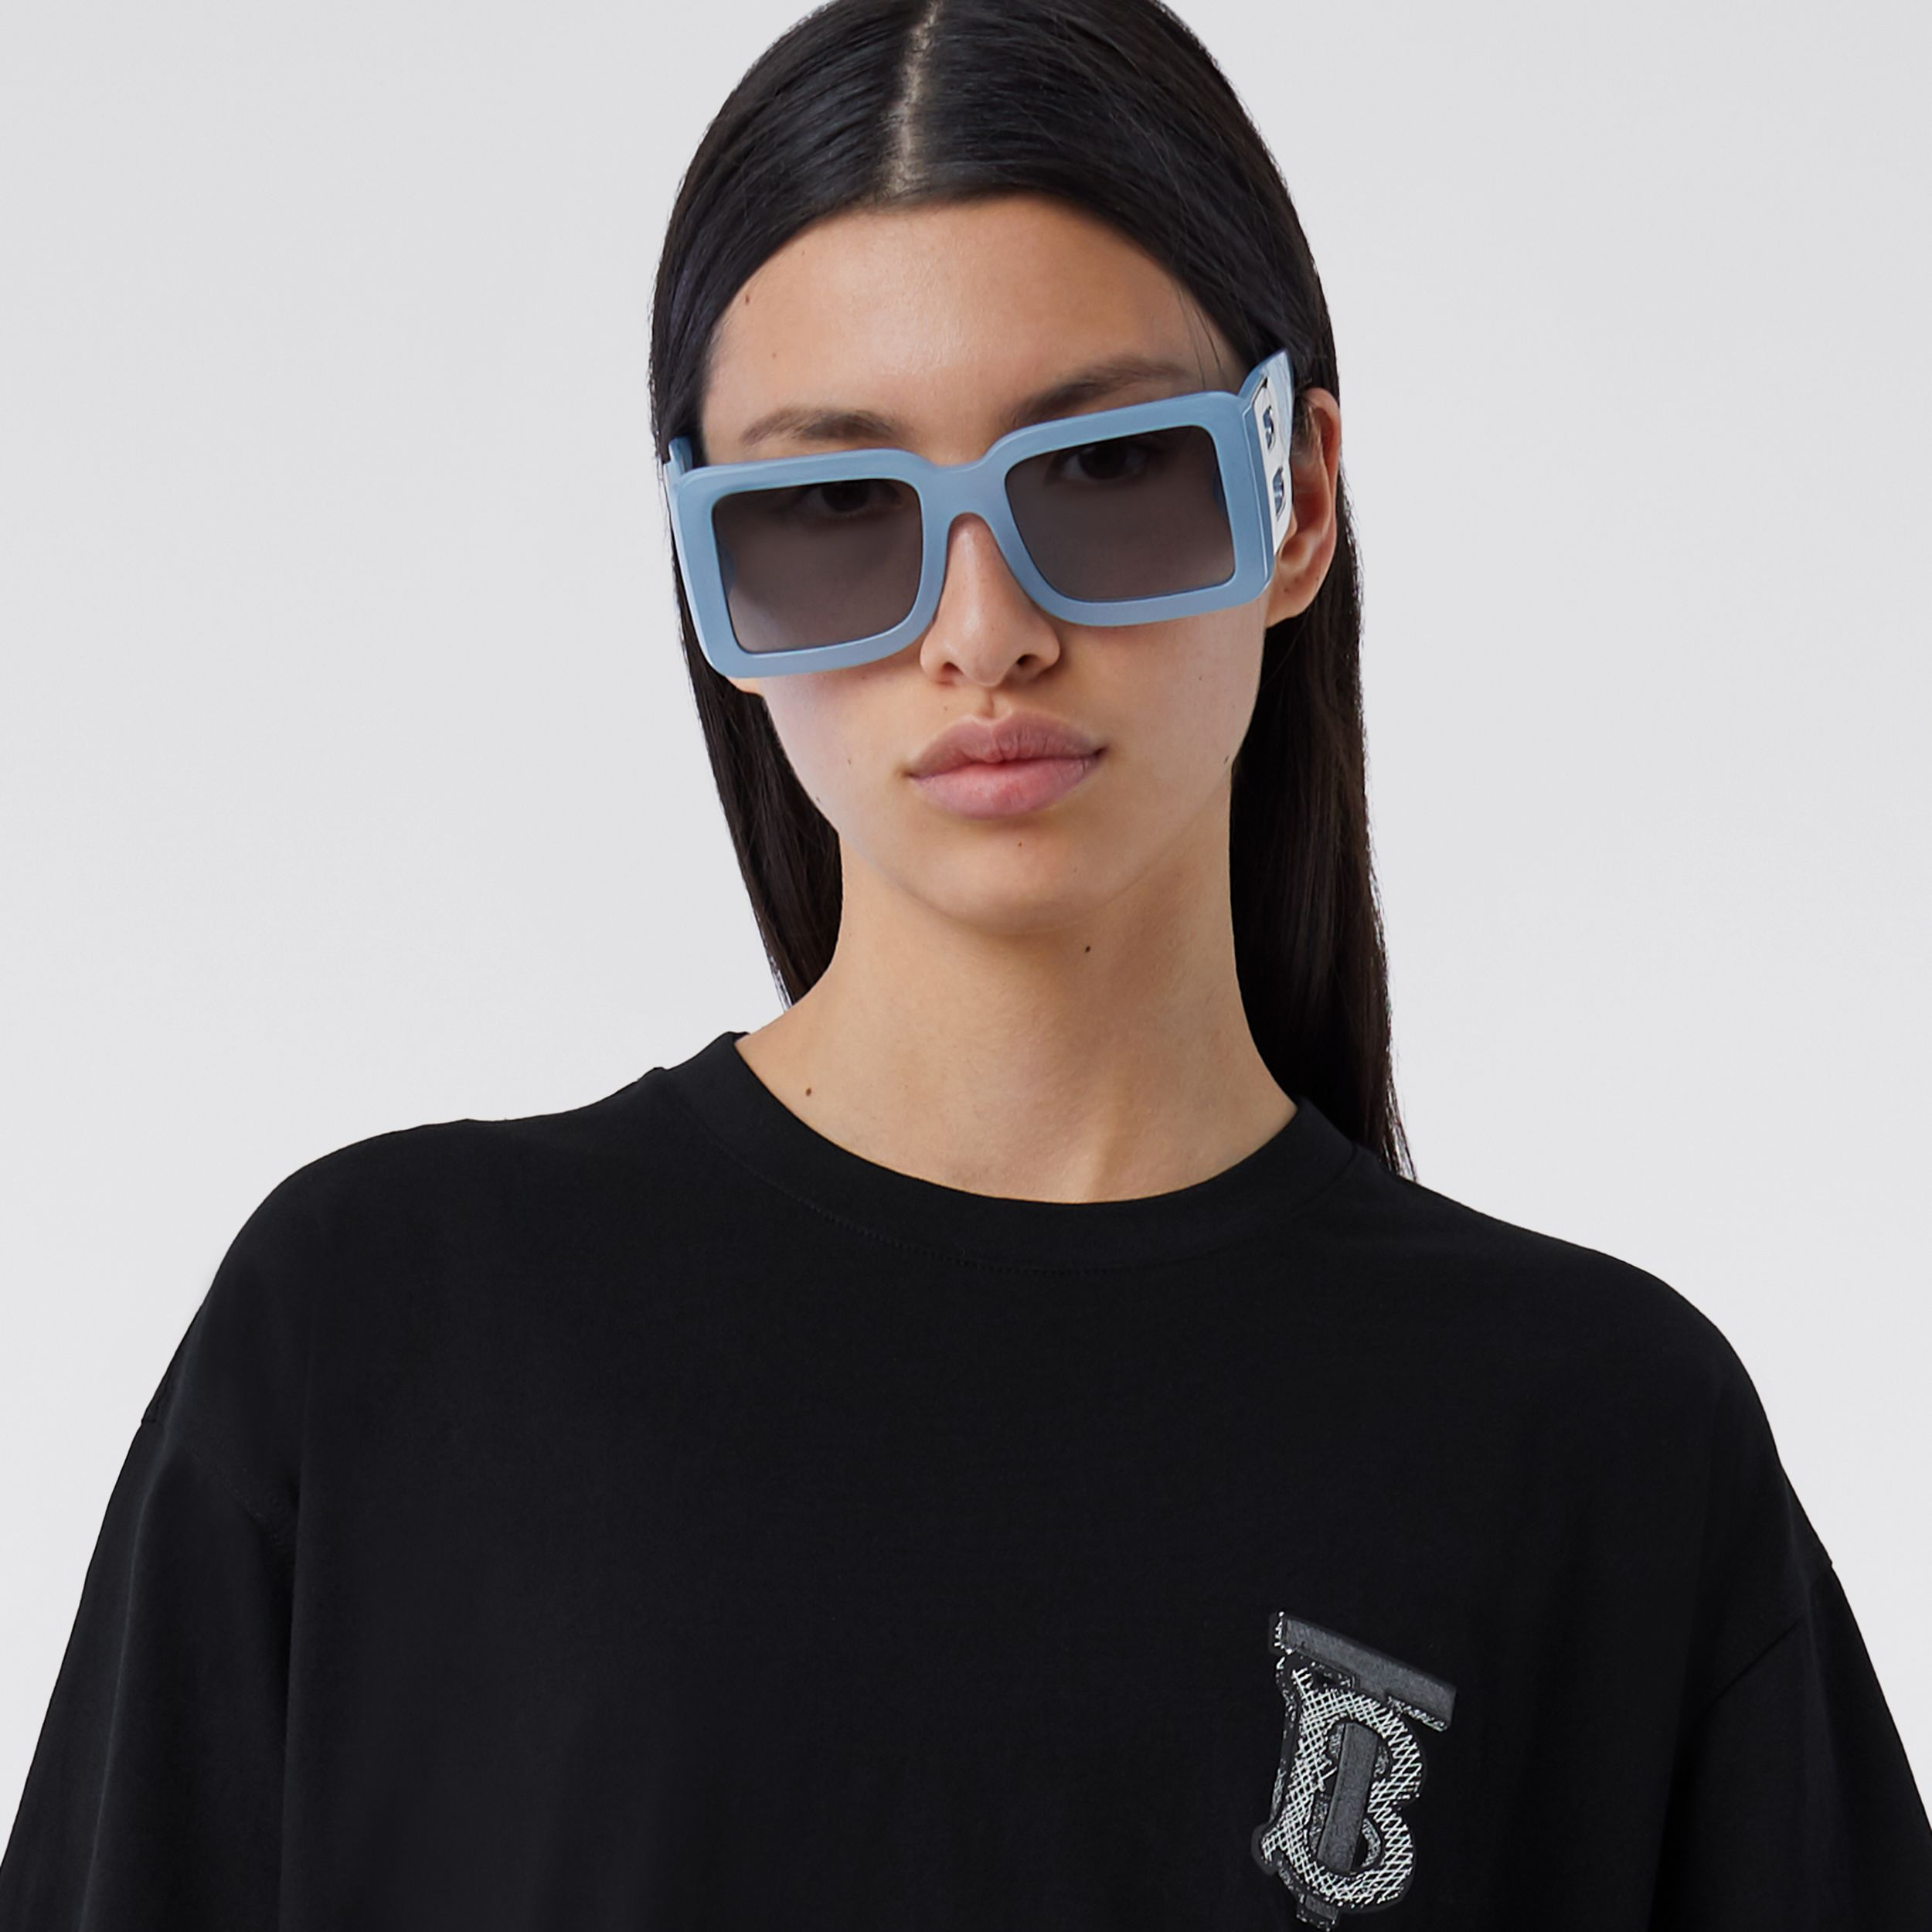 Monogram Motif Cotton T-shirt – Unisex in Black | Burberry - 2